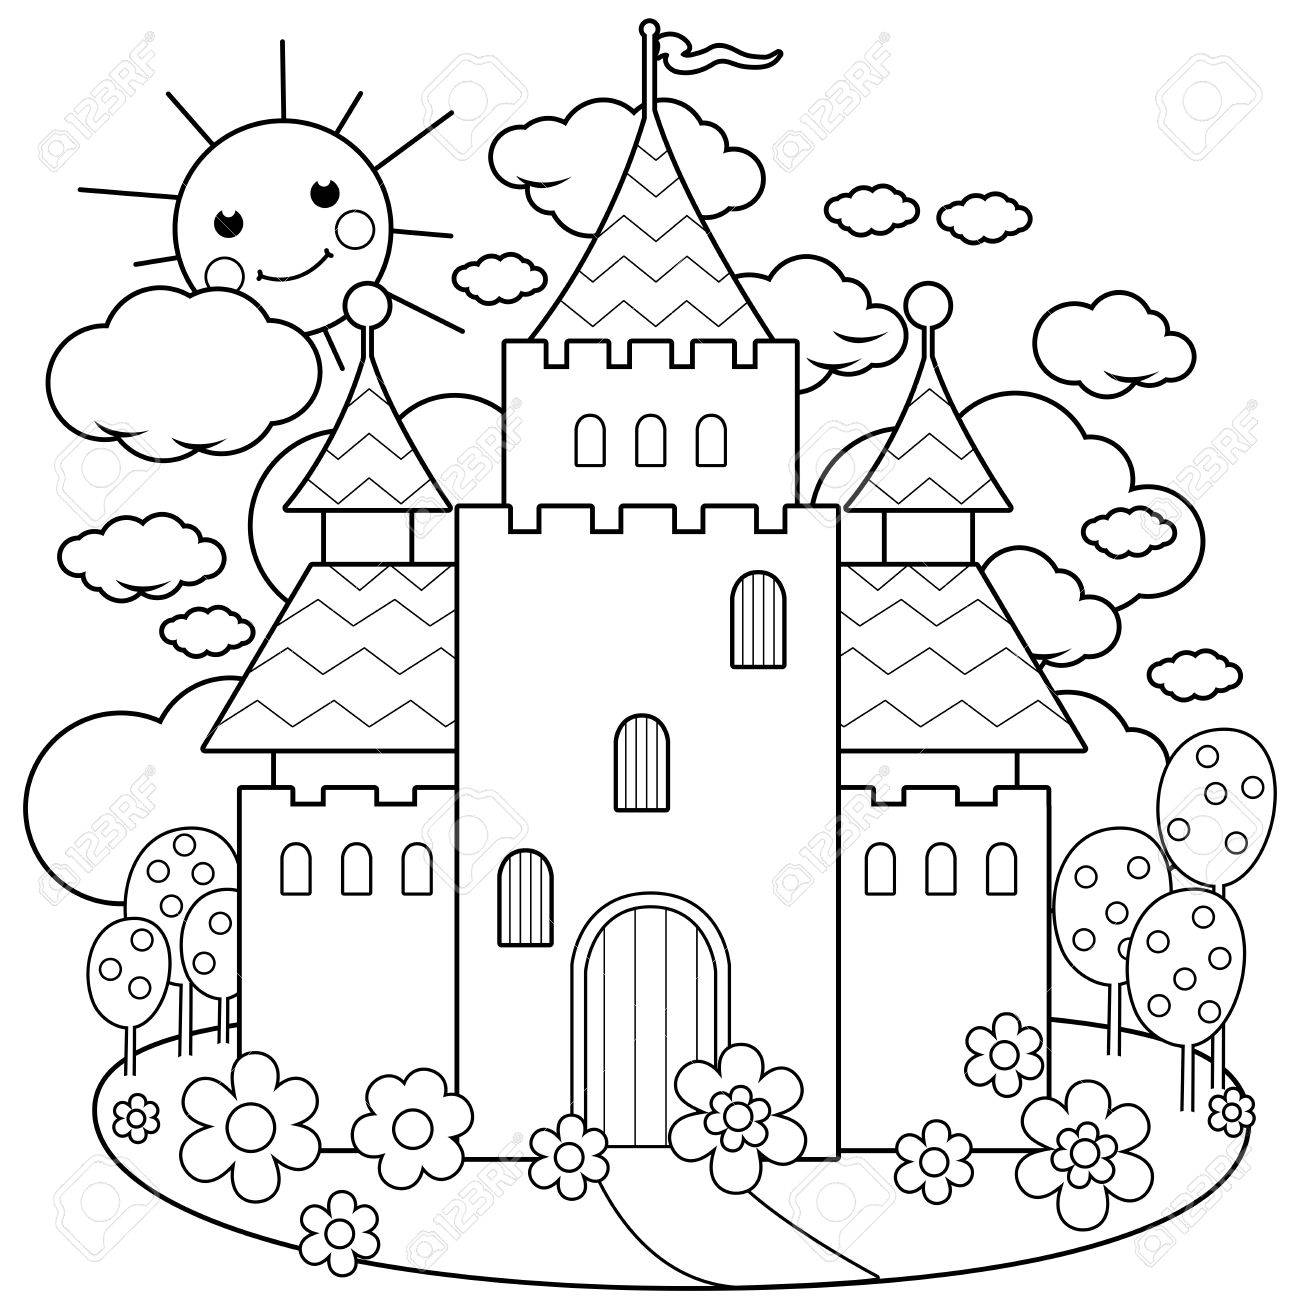 Fairy Tale Castle Drawing at GetDrawings.com | Free for personal use ...